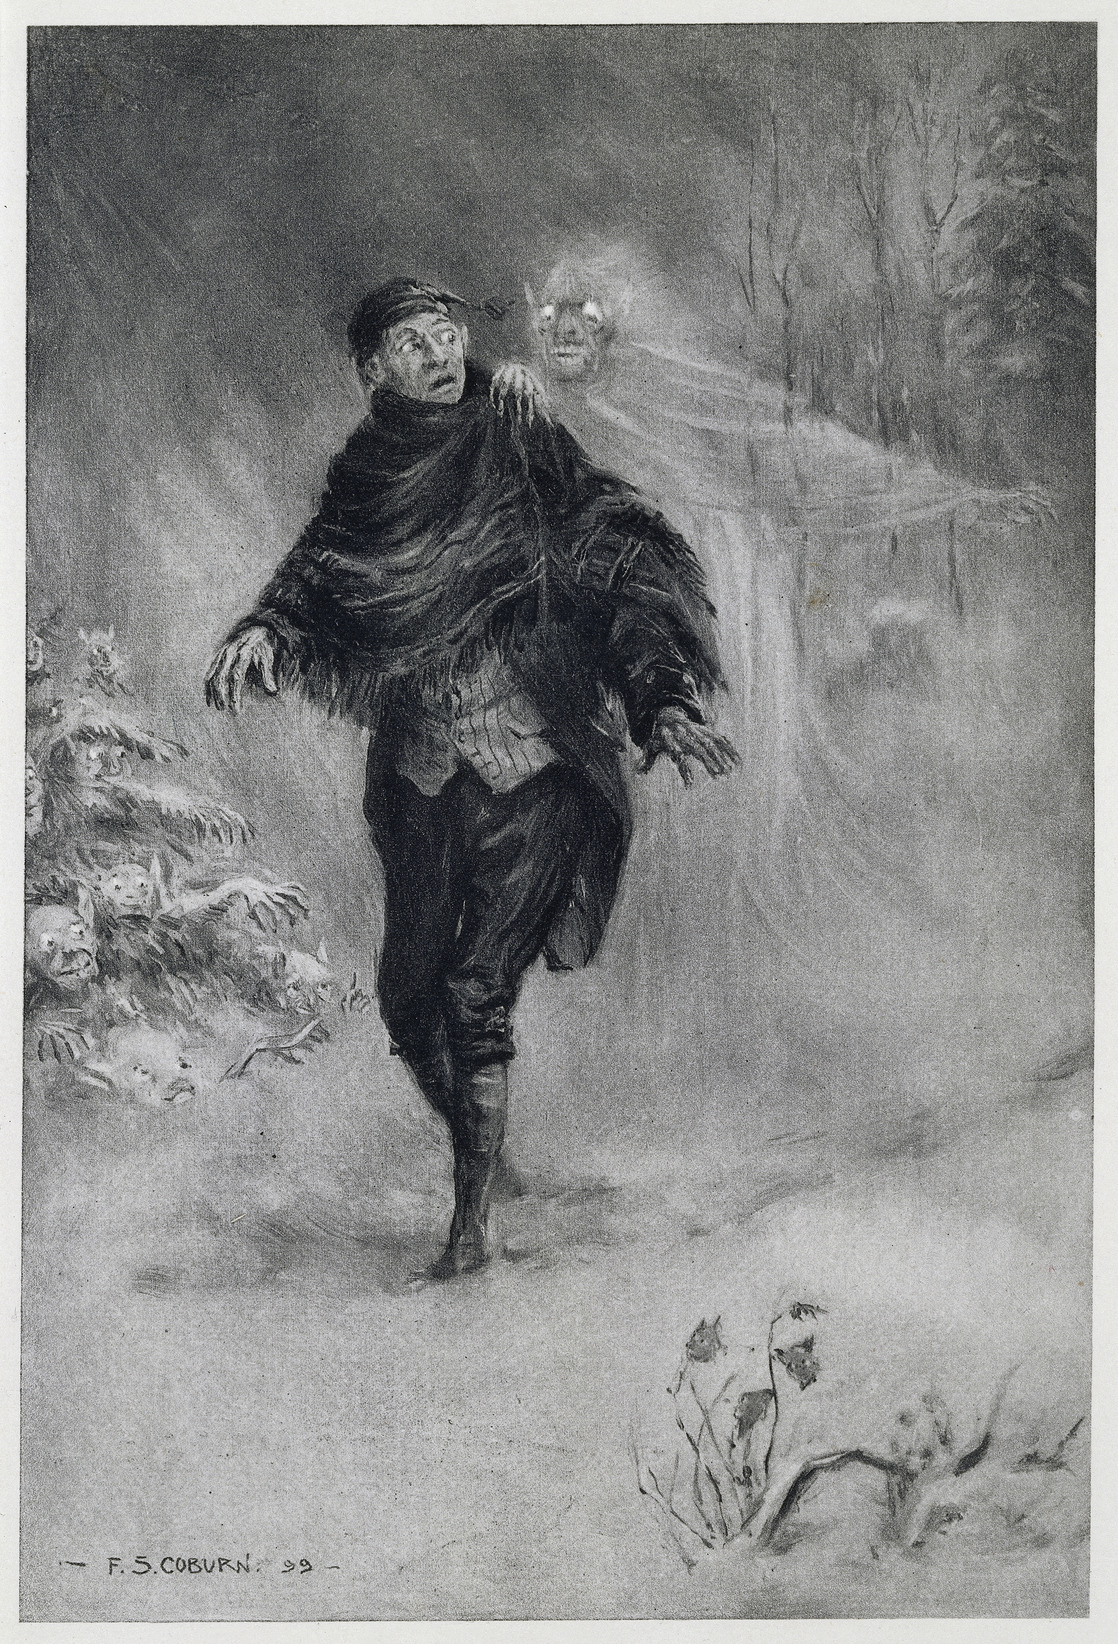 Image taken from  The Legend of Sleepy Hollow .  Originally published/produced in New York, G.P. Putnam's Sons, 1899.  Taken from  Wikimedia Commons . Ultimately from the British Library by way of  Flikr Commons .